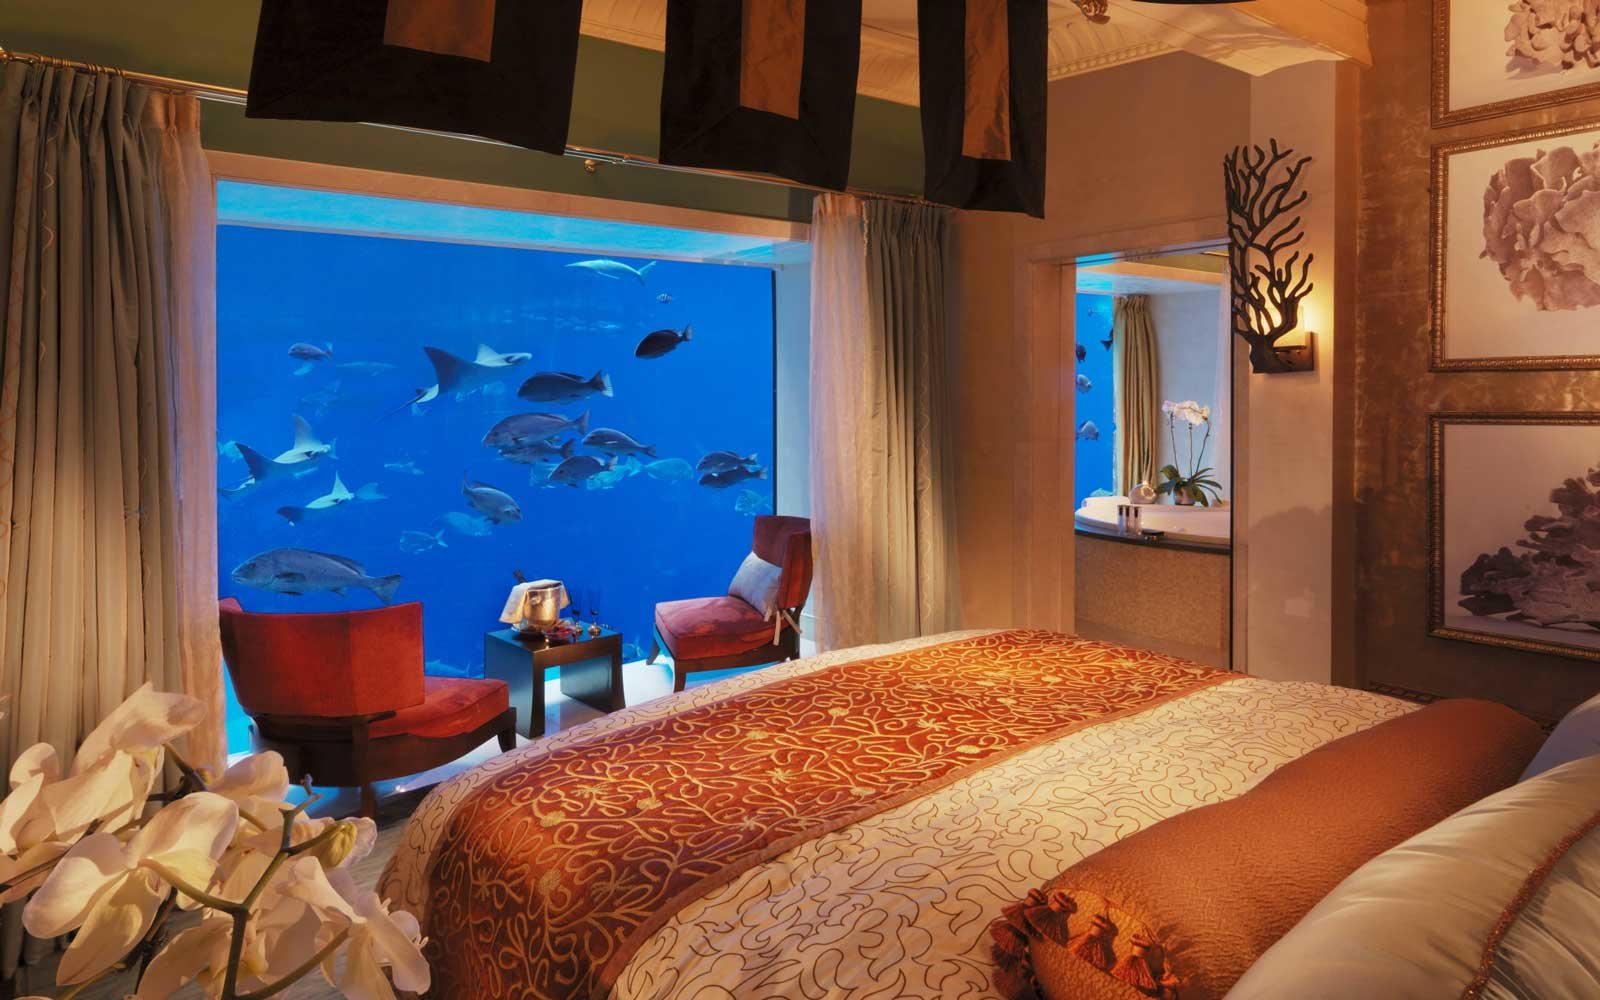 Underwater suite at the Atlantis the Palm hotel, in Dubai